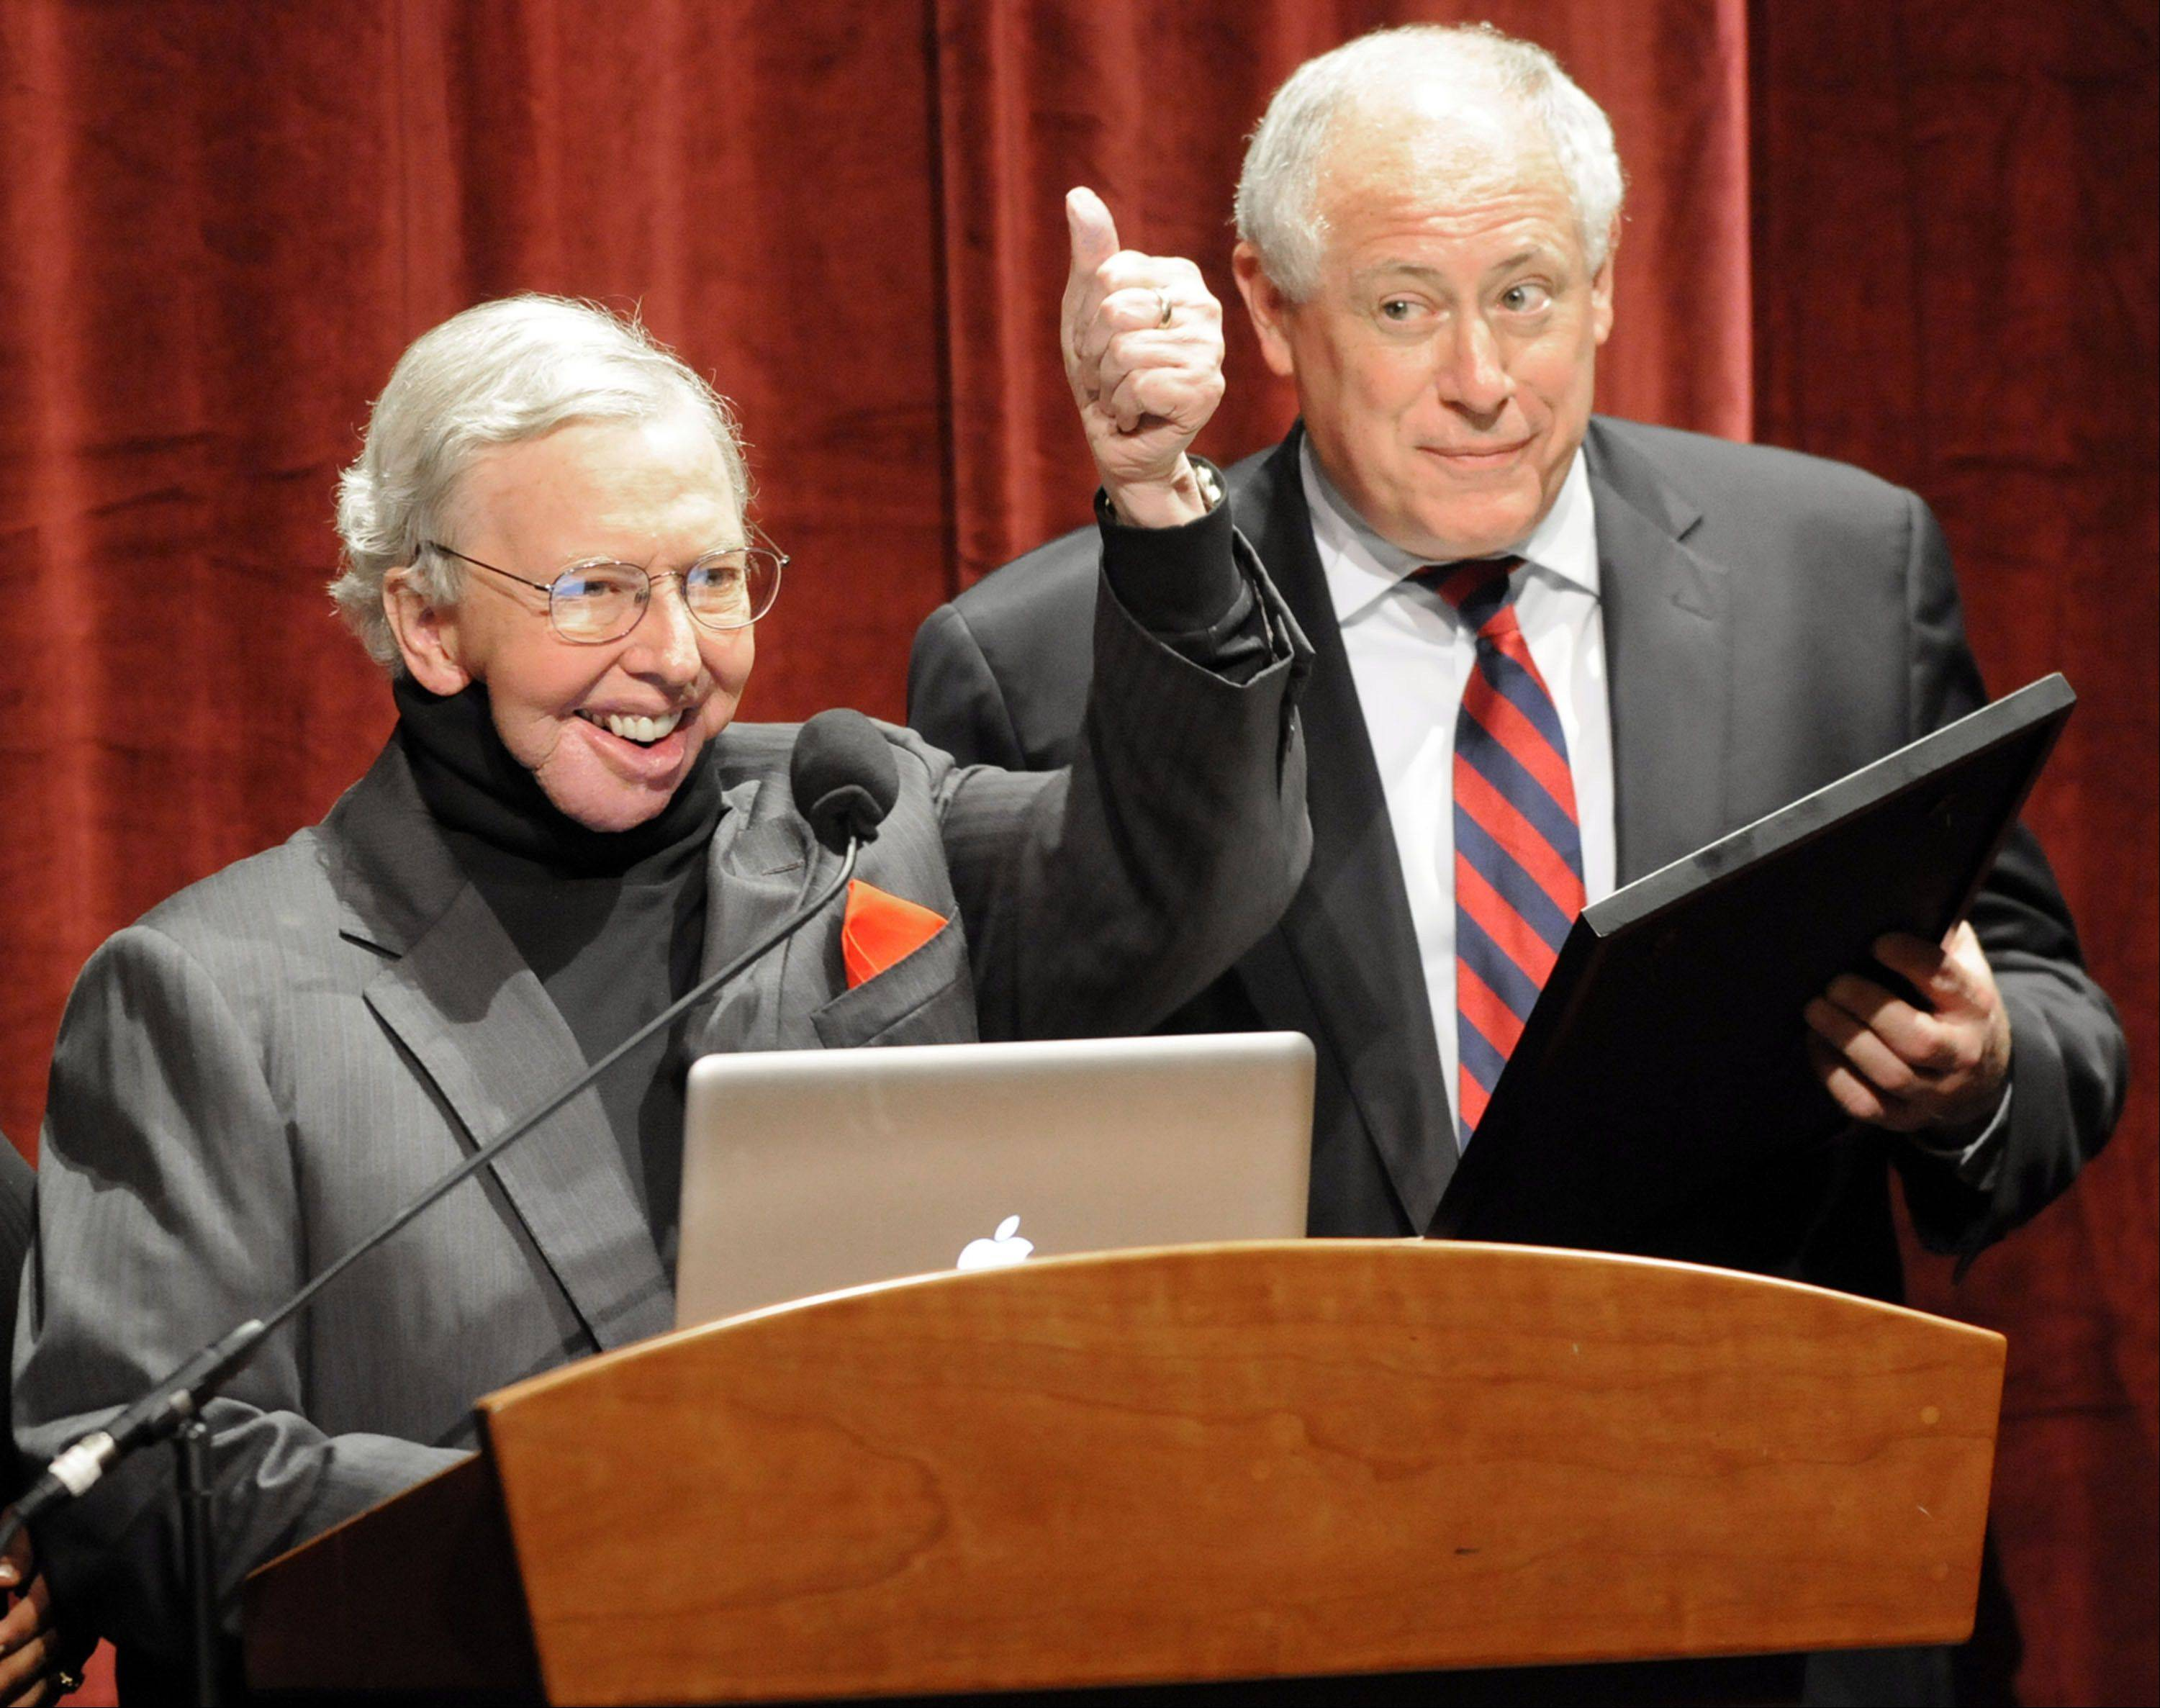 Film Critic Roger Ebert, left, gives a thumbs up to the audience as Illinois Governor Pat Quinn reads a proclamation declaring April 21, 2010 Roger Ebert Day in Illinois during the opening of the Twelfth Annual Roger Ebert's Film Festival at the Virginia Theatre in Champaign on Wednesday, April 21, 2010.